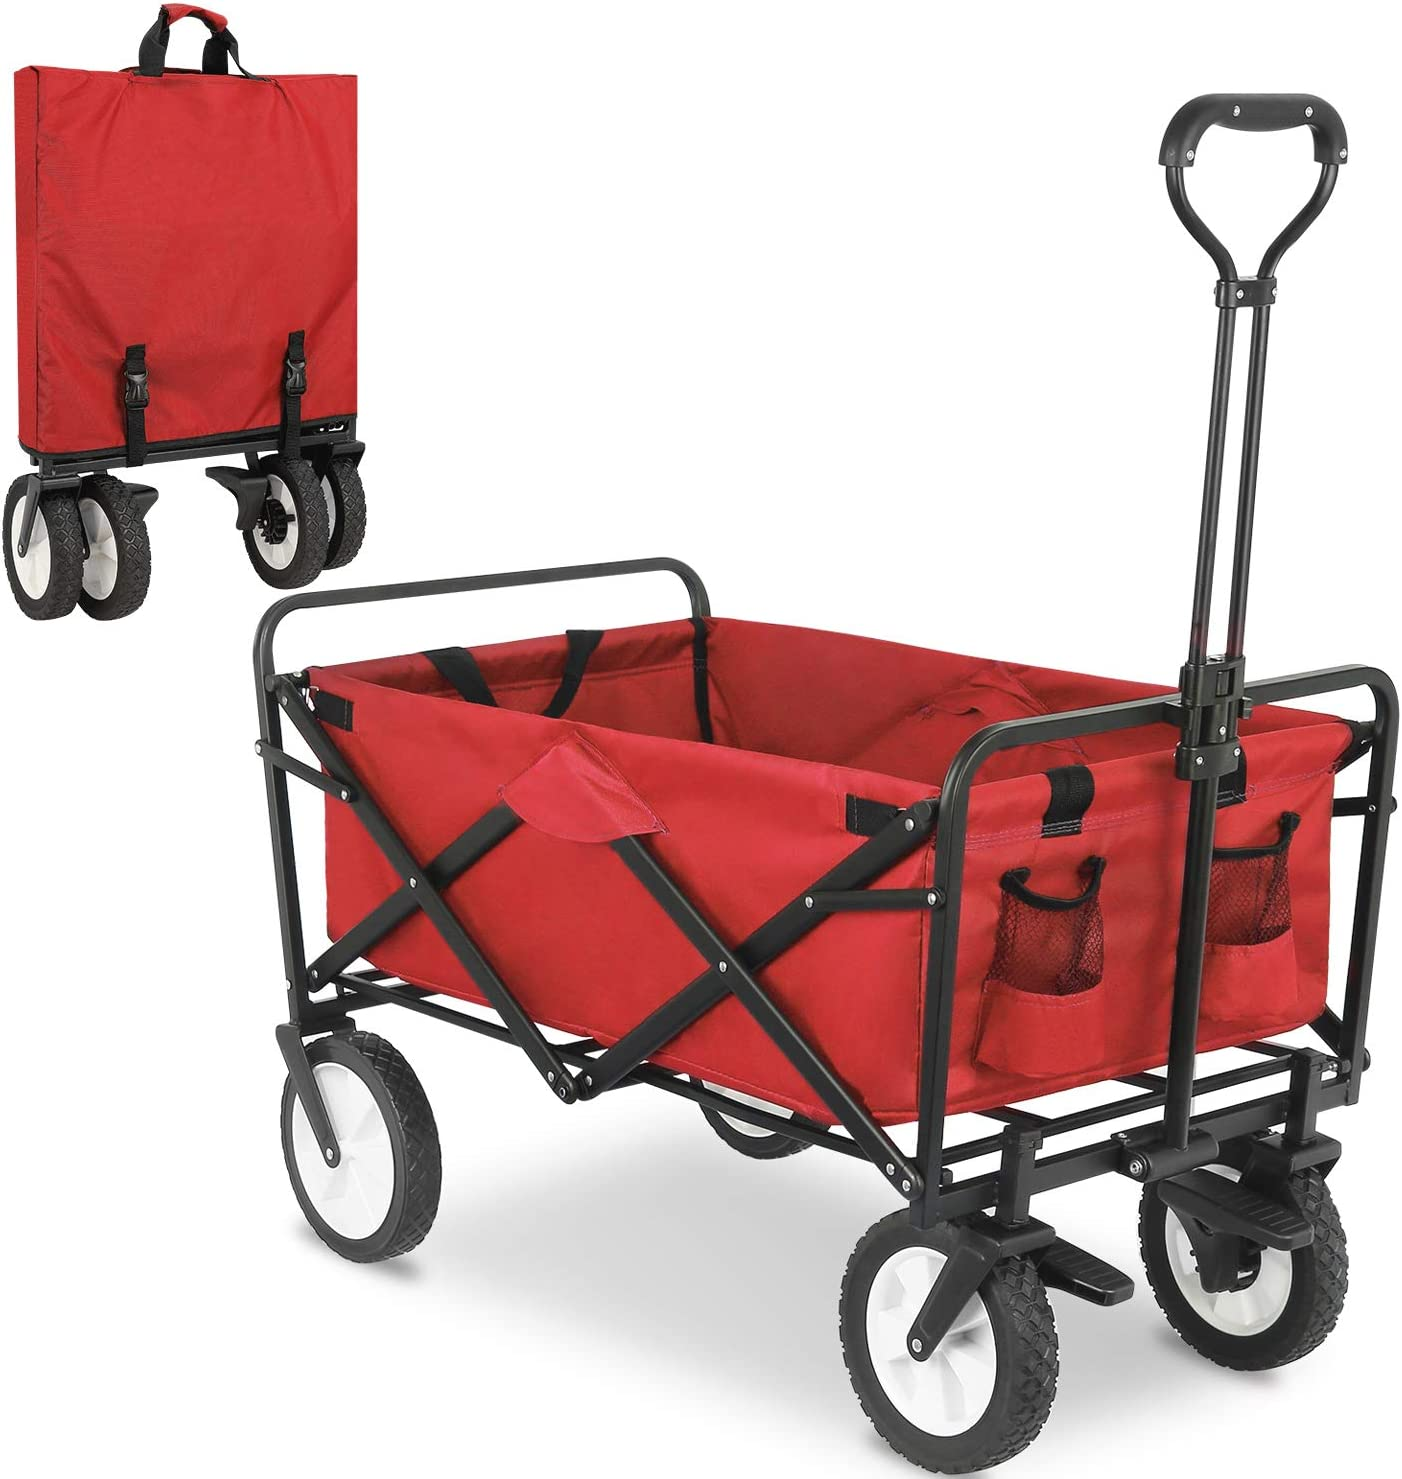 FIXKIT Collapsible Folding Outdoor Utility Wagon, Heavy Duty Garden Cart with Wheel Brakes and 2 Cup Holders Blue (Red)